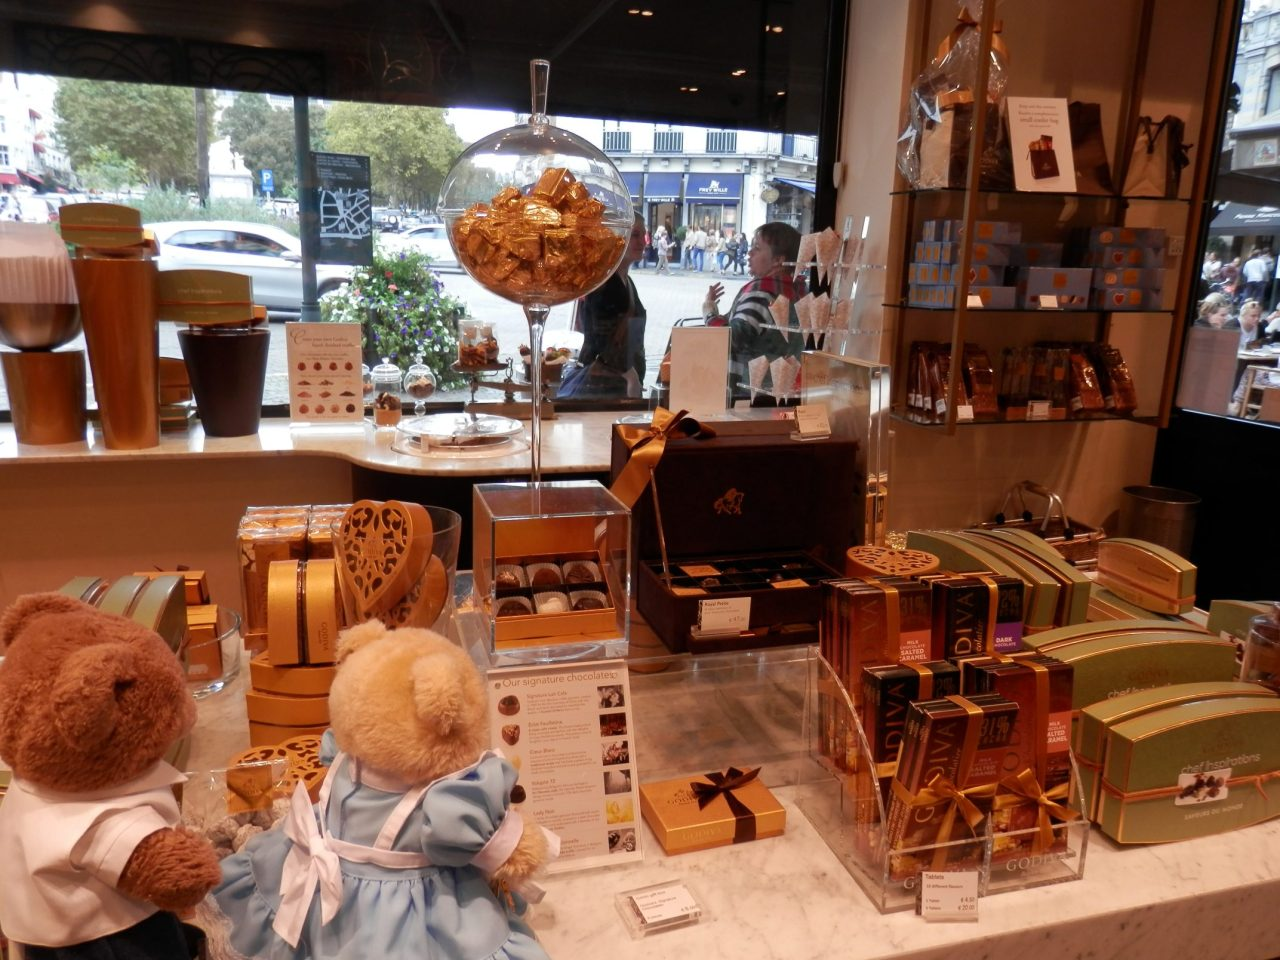 On the Chocolate Trail inBrussels